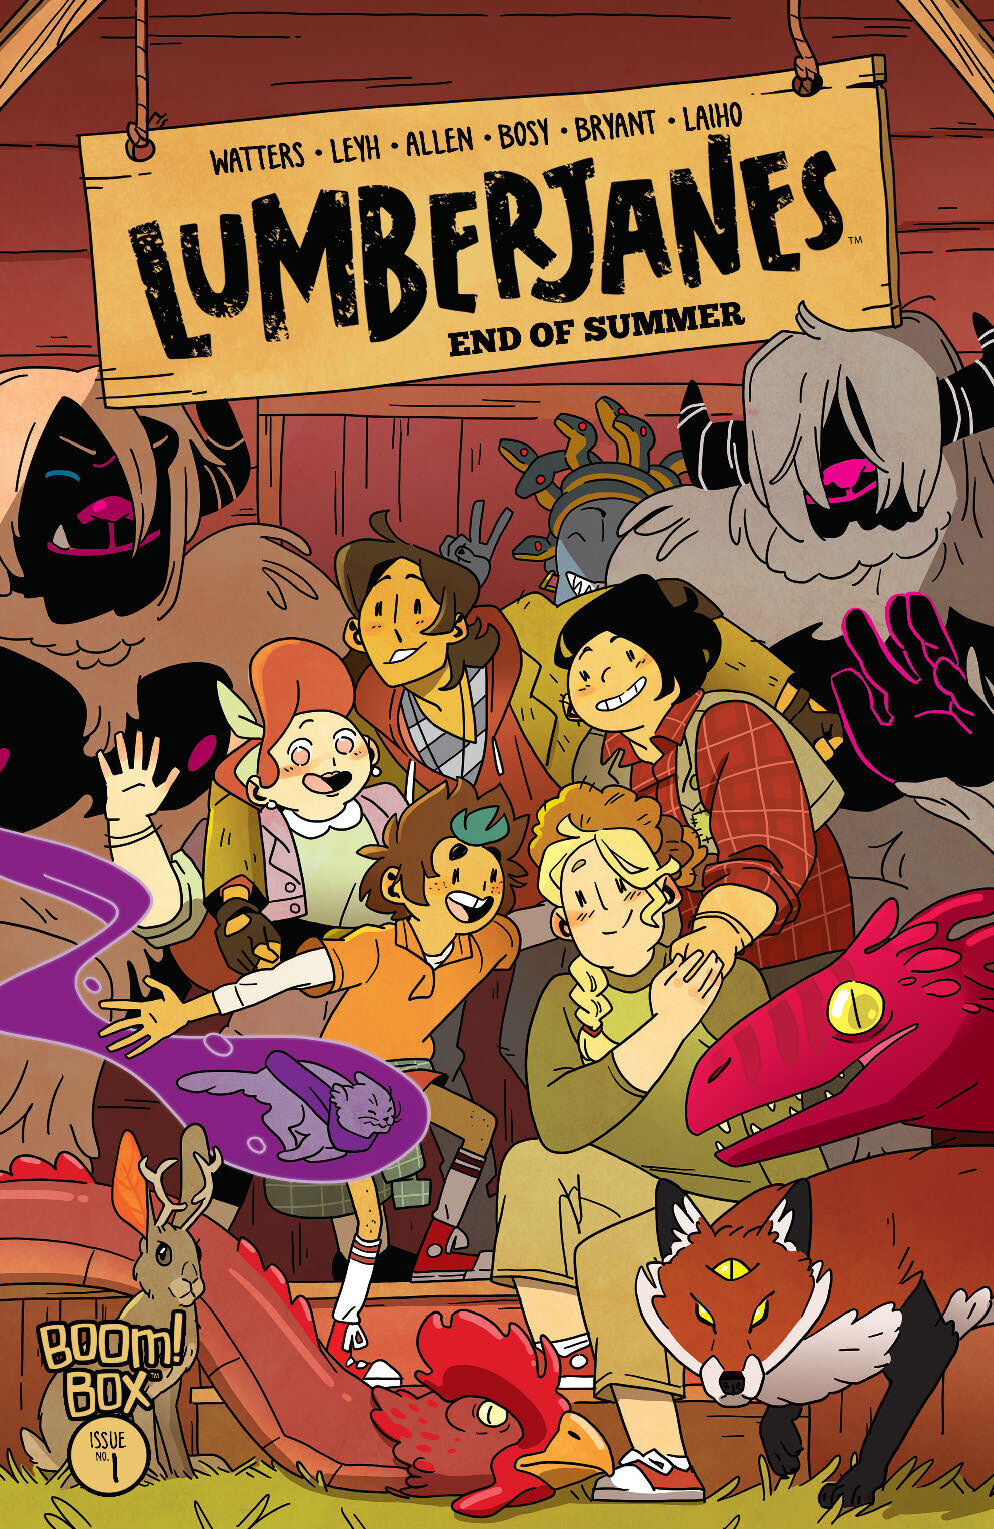 SYNOPSIS: The END OF SUMMER is here in the final issue of  Lumberjanes ! Co-Creator & Series Artist Brooklyn Allen Returns...along with the Kitten Holy! Now the scouts of Miss Qiunzella Thiskwin Penniquiqul Thistle Crumpet's Camp for Hardcore Lady Types will have to fight back against the mysterious force known as the Grey! Meanwhile, Molly has discovered a deep and ancient forest magic, which she hopes to use to protect her friends and the home they've all found here. Will she be able to, though? Or is this all-encompassing, all-erasing Grey just too much for one 'Jane to fight on her own?